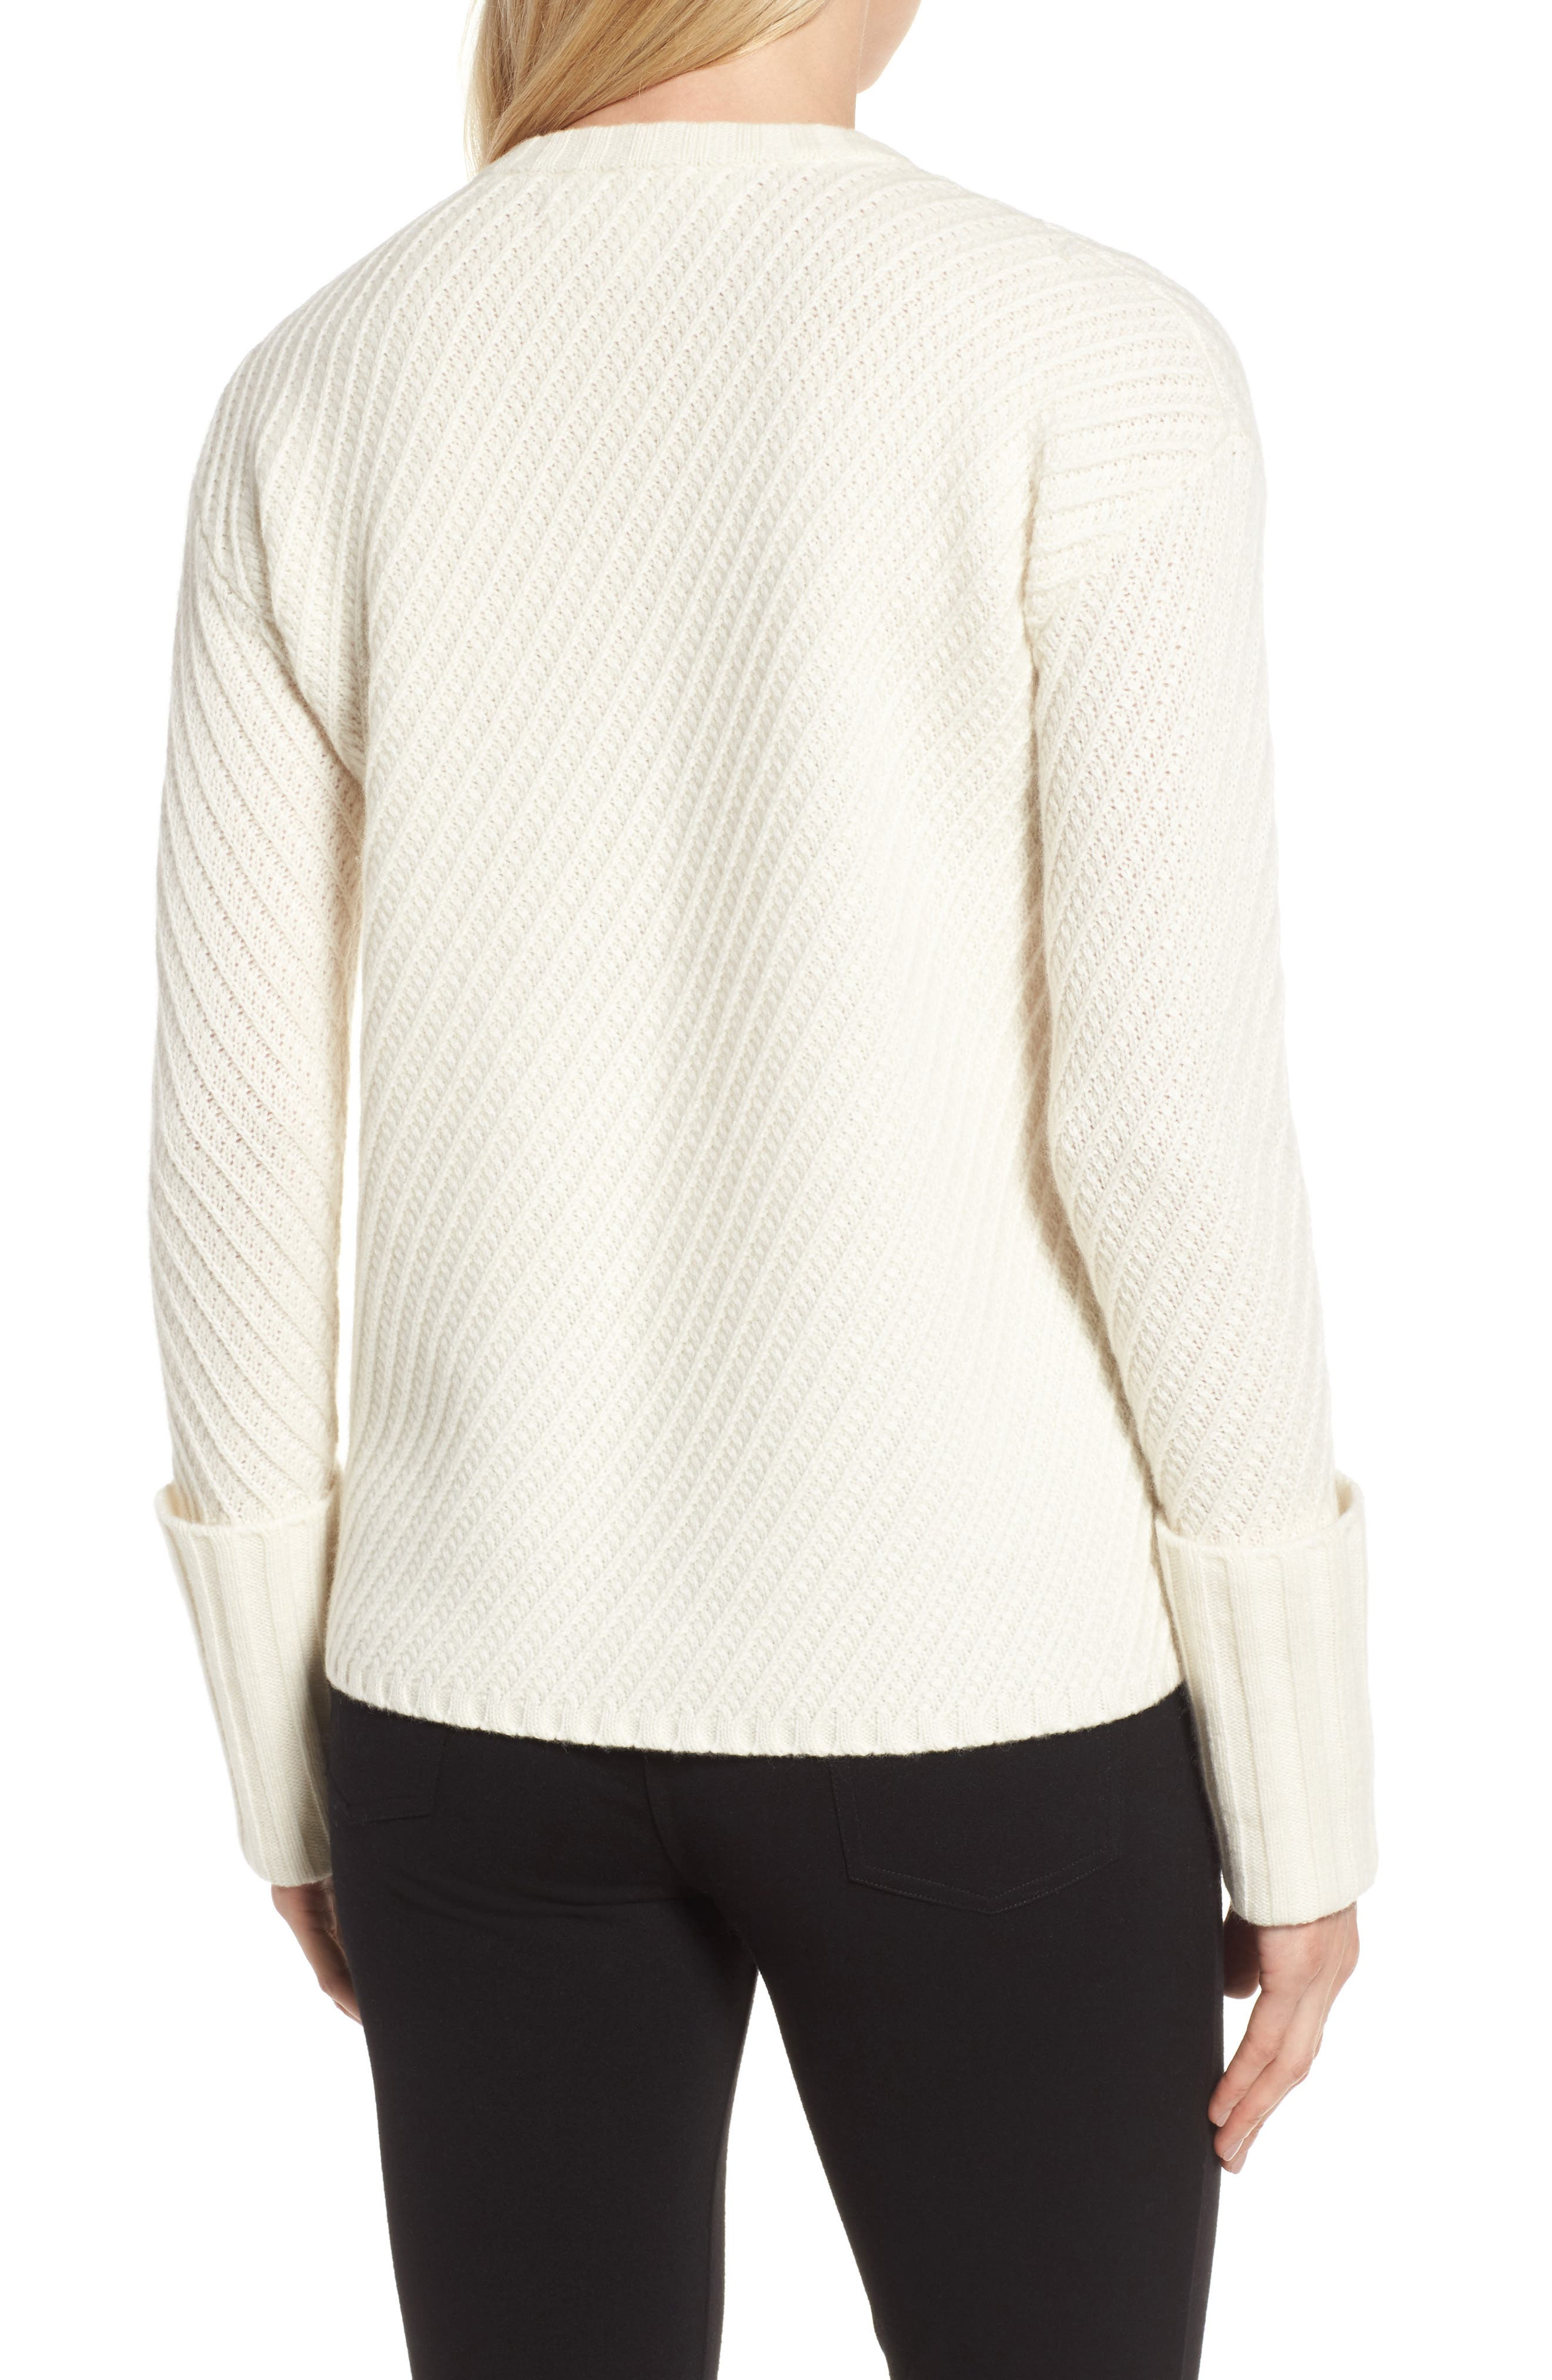 Textured Cashmere Sweater,                             Alternate thumbnail 2, color,                             Ivory Soft